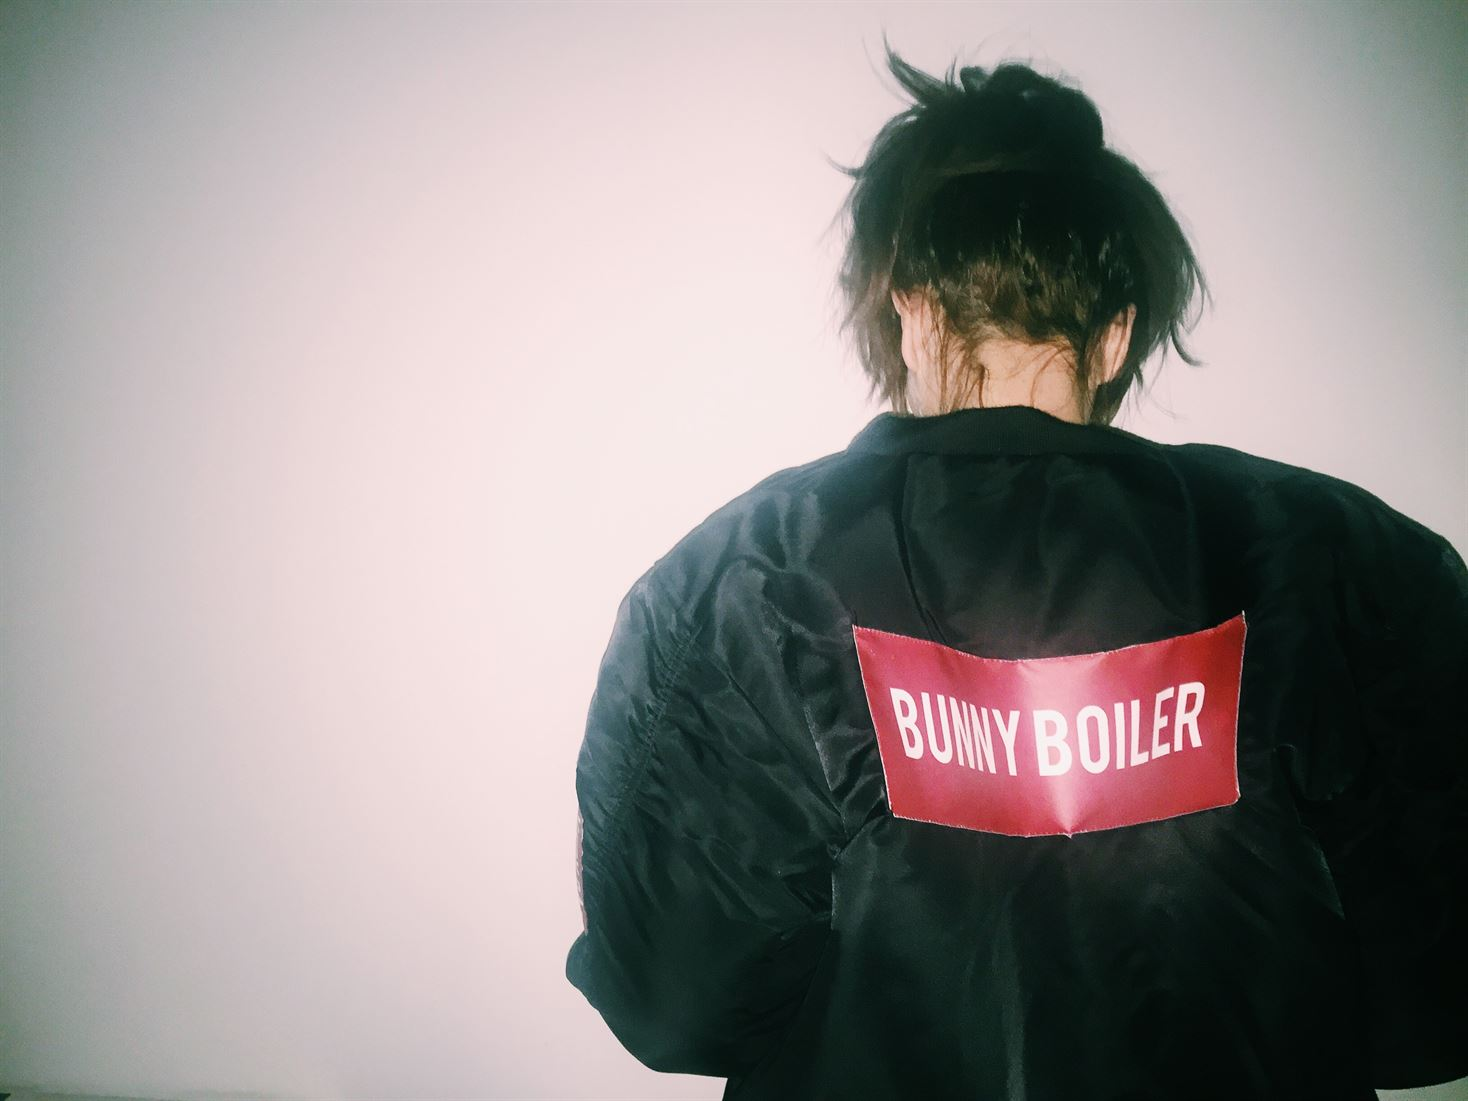 VERY RARE bunny boiler bomber jacket by sven harambasic